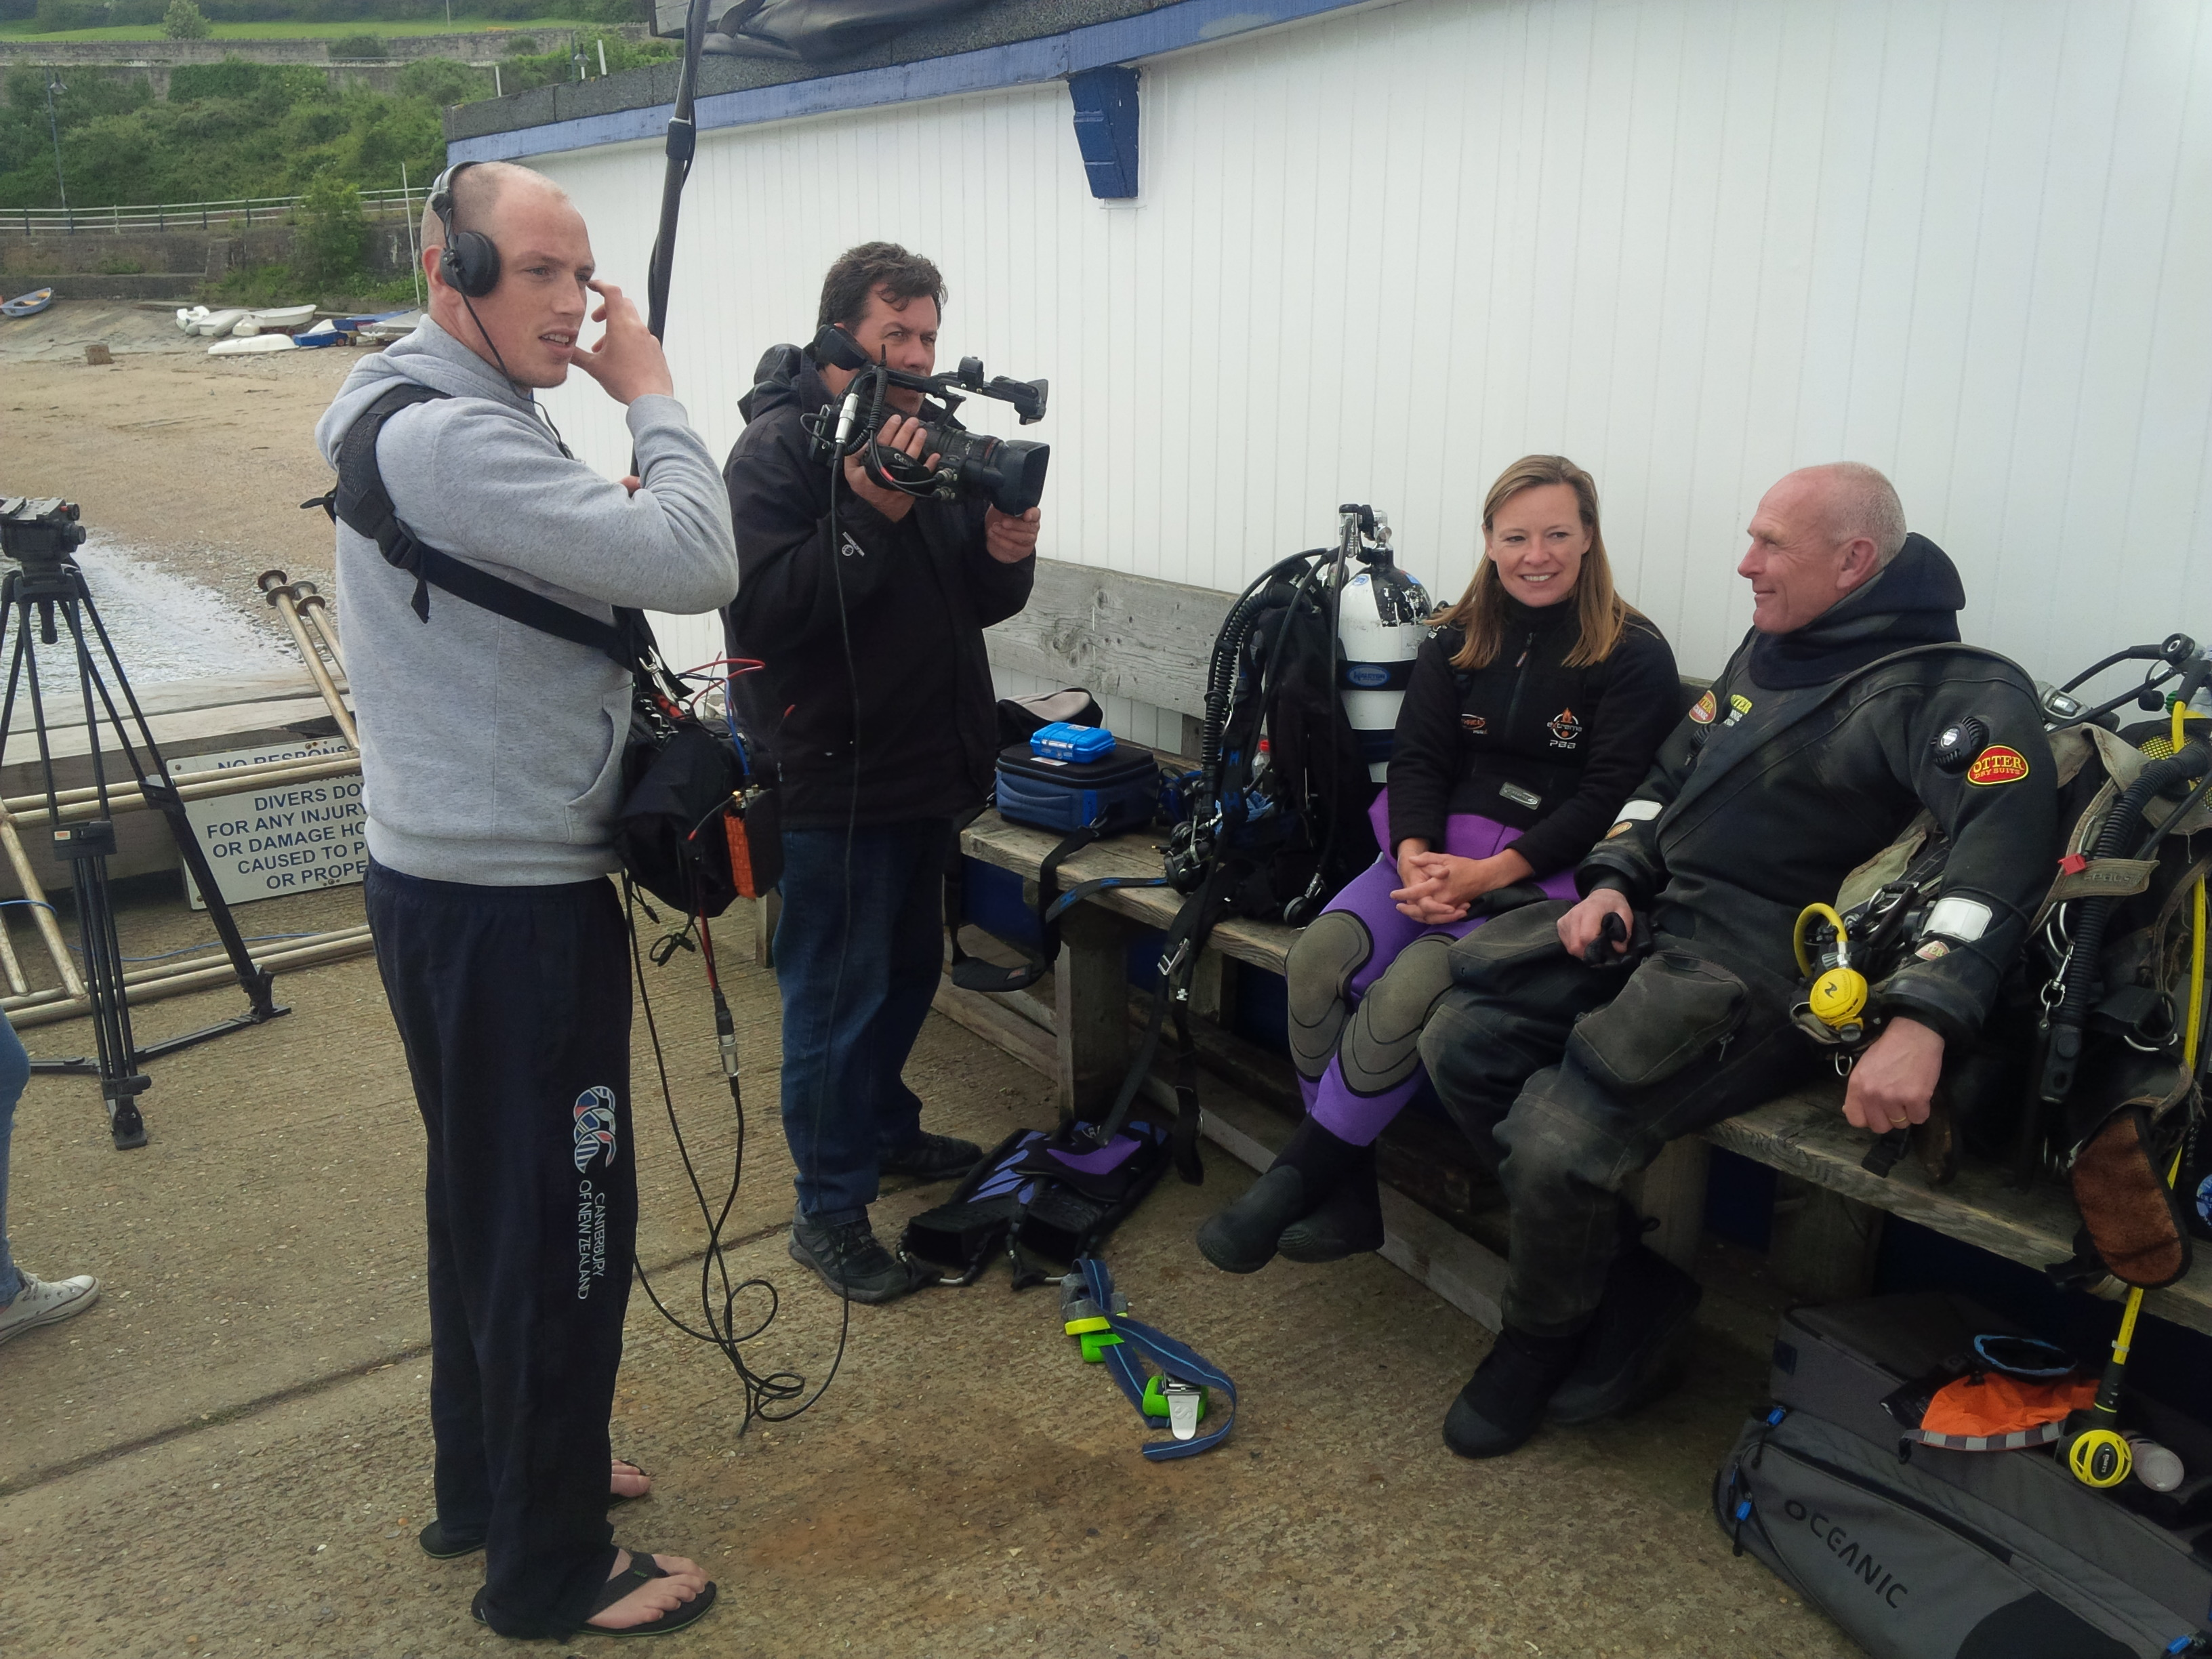 BBC One Show shoot in Swanage